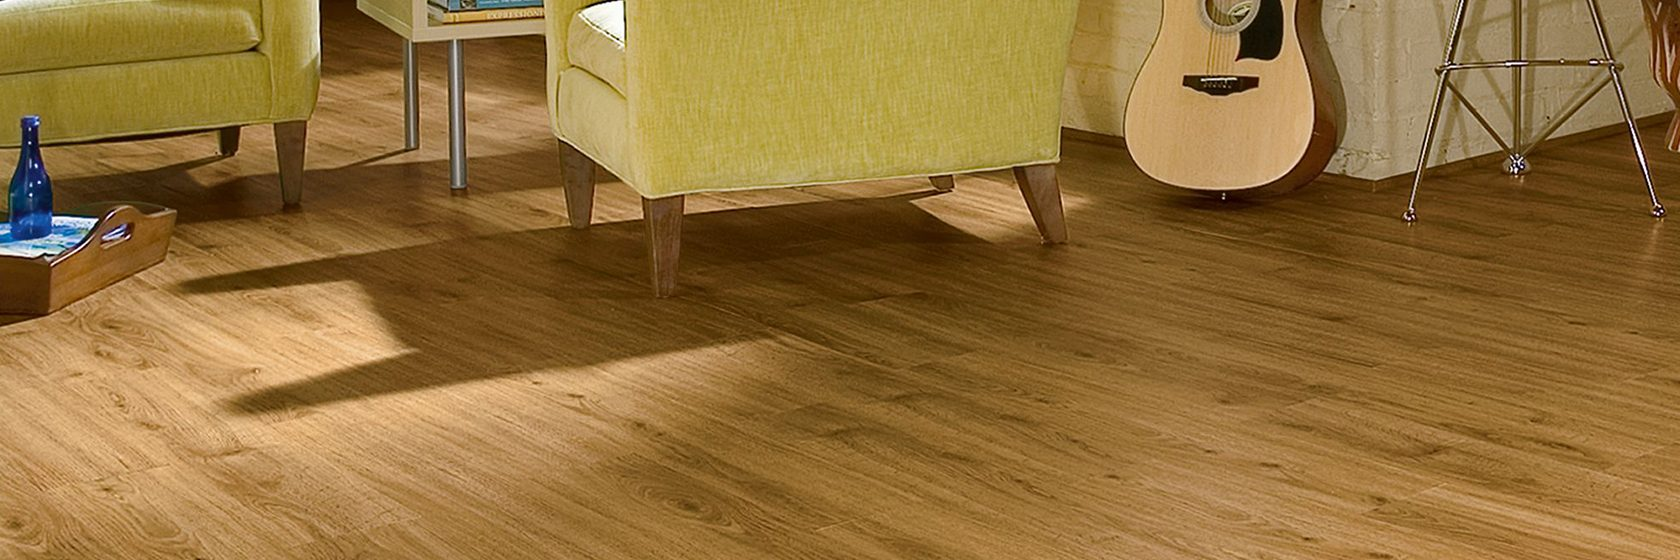 natural wood allure vinyl plank flooring matched with. Black Bedroom Furniture Sets. Home Design Ideas